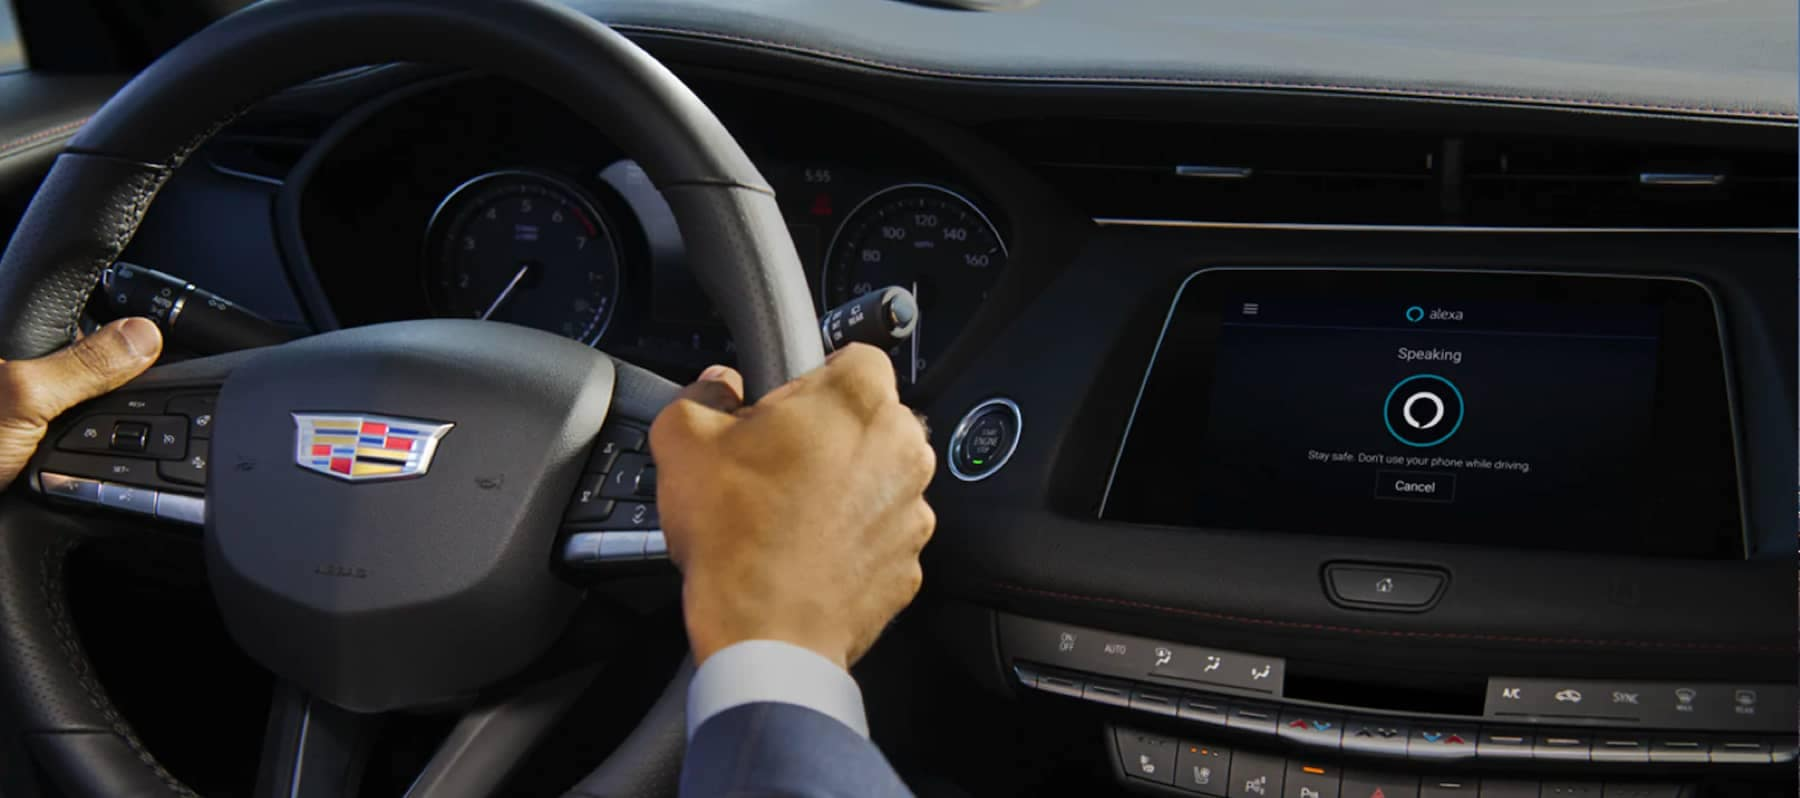 Hands on the steering wheel of a new Cadillac